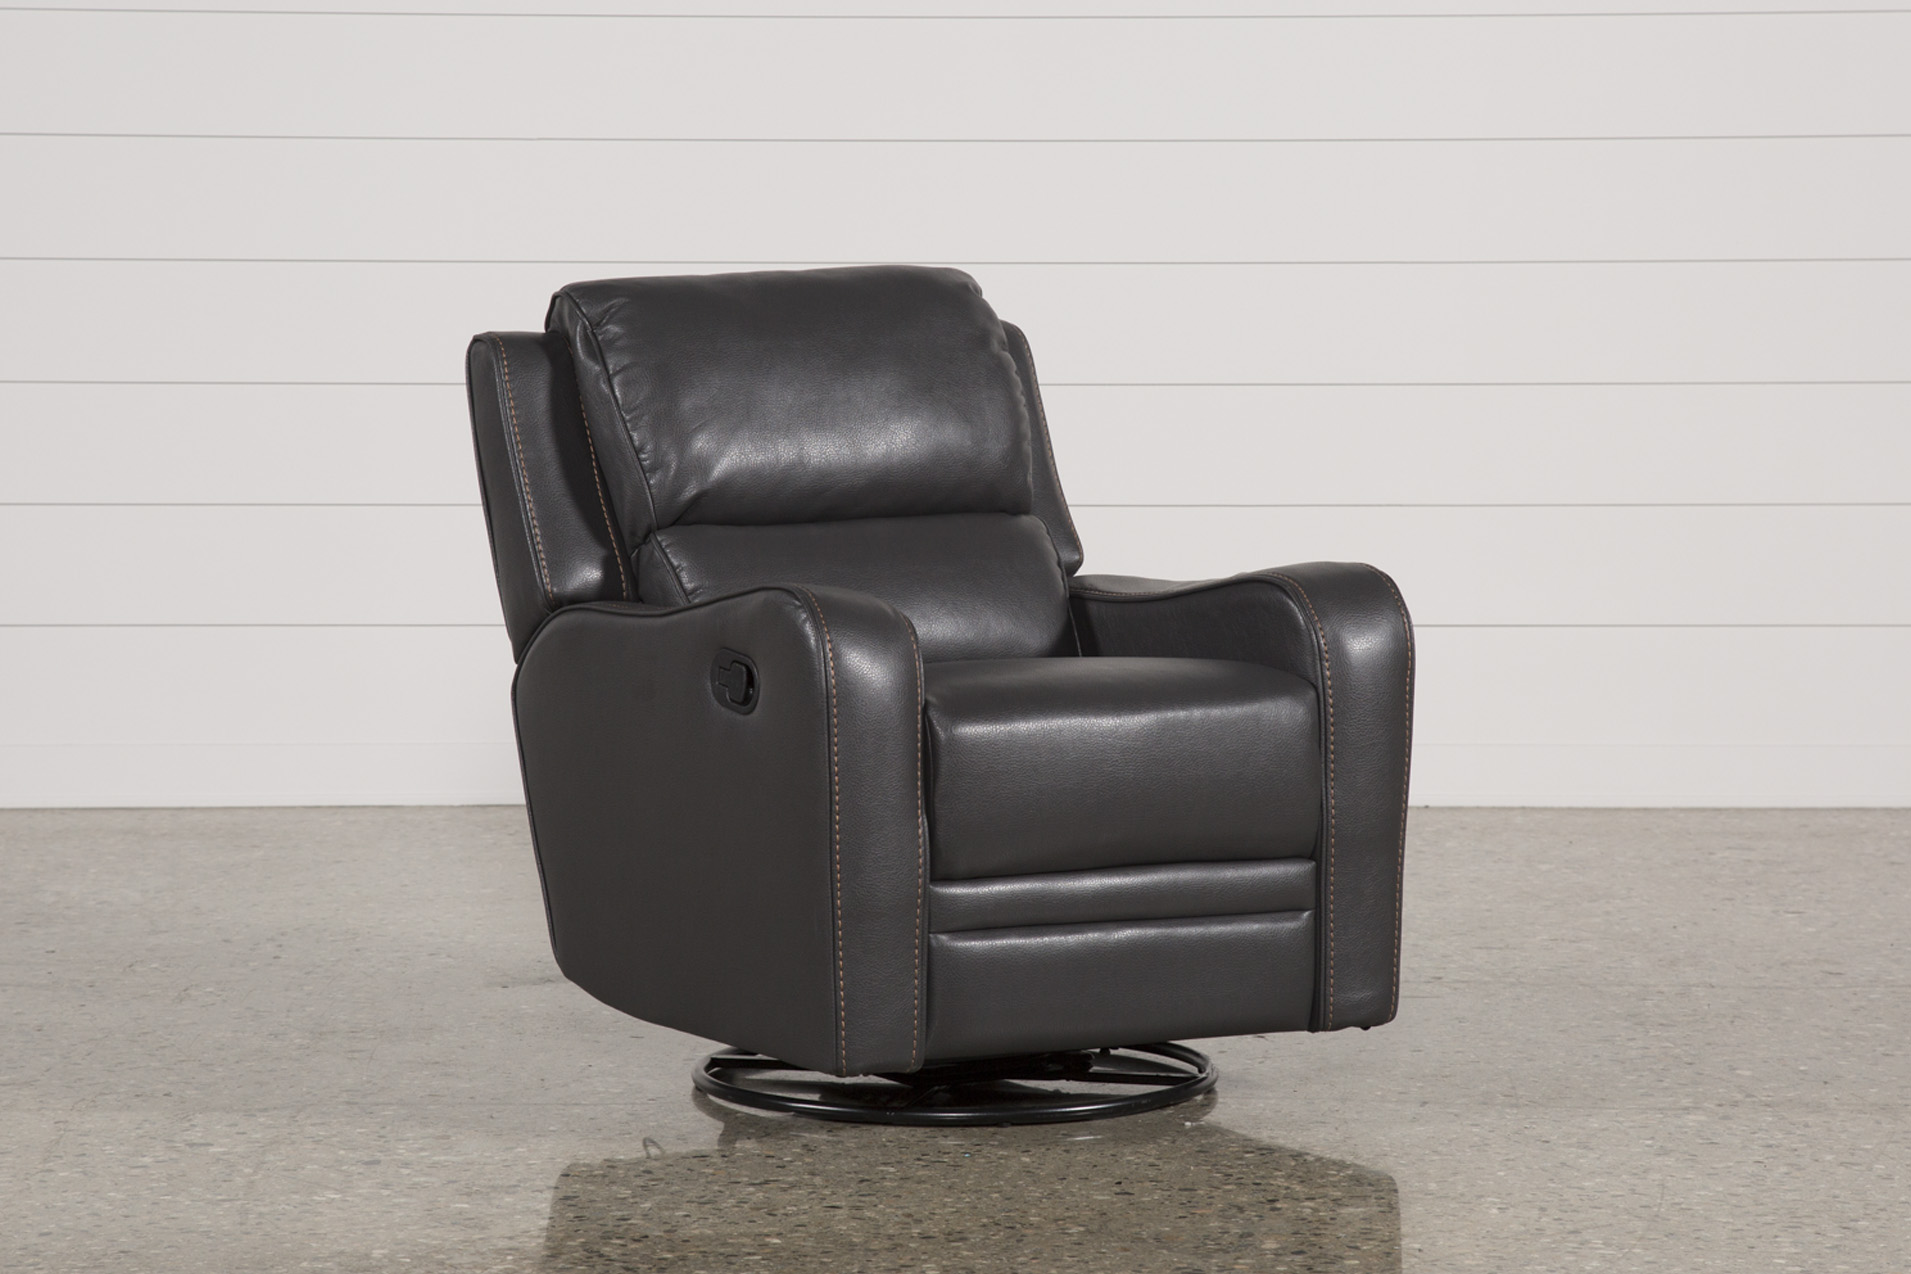 Scorpio Dark Grey Swivel Glider Recliner (Qty: 1) Has Been Successfully  Added To Your Cart.